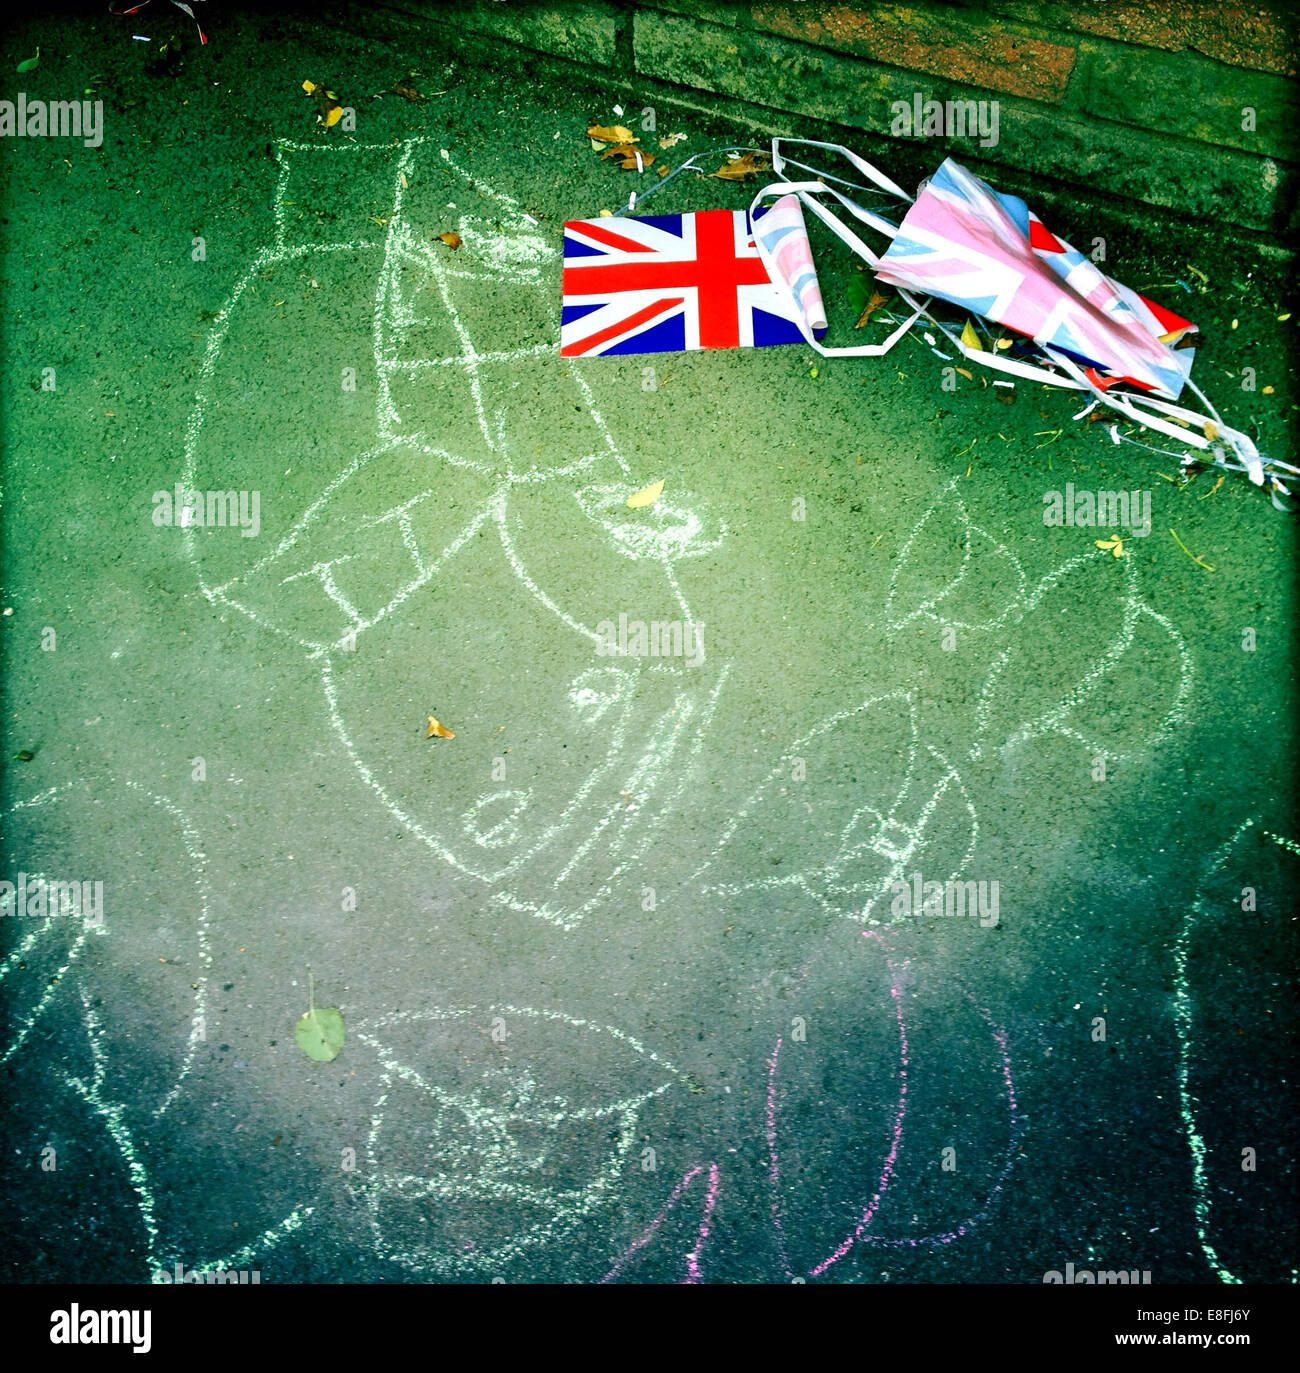 UK, England, London, Chalk drawings on sidewalk and bunting next to it Stock Photo